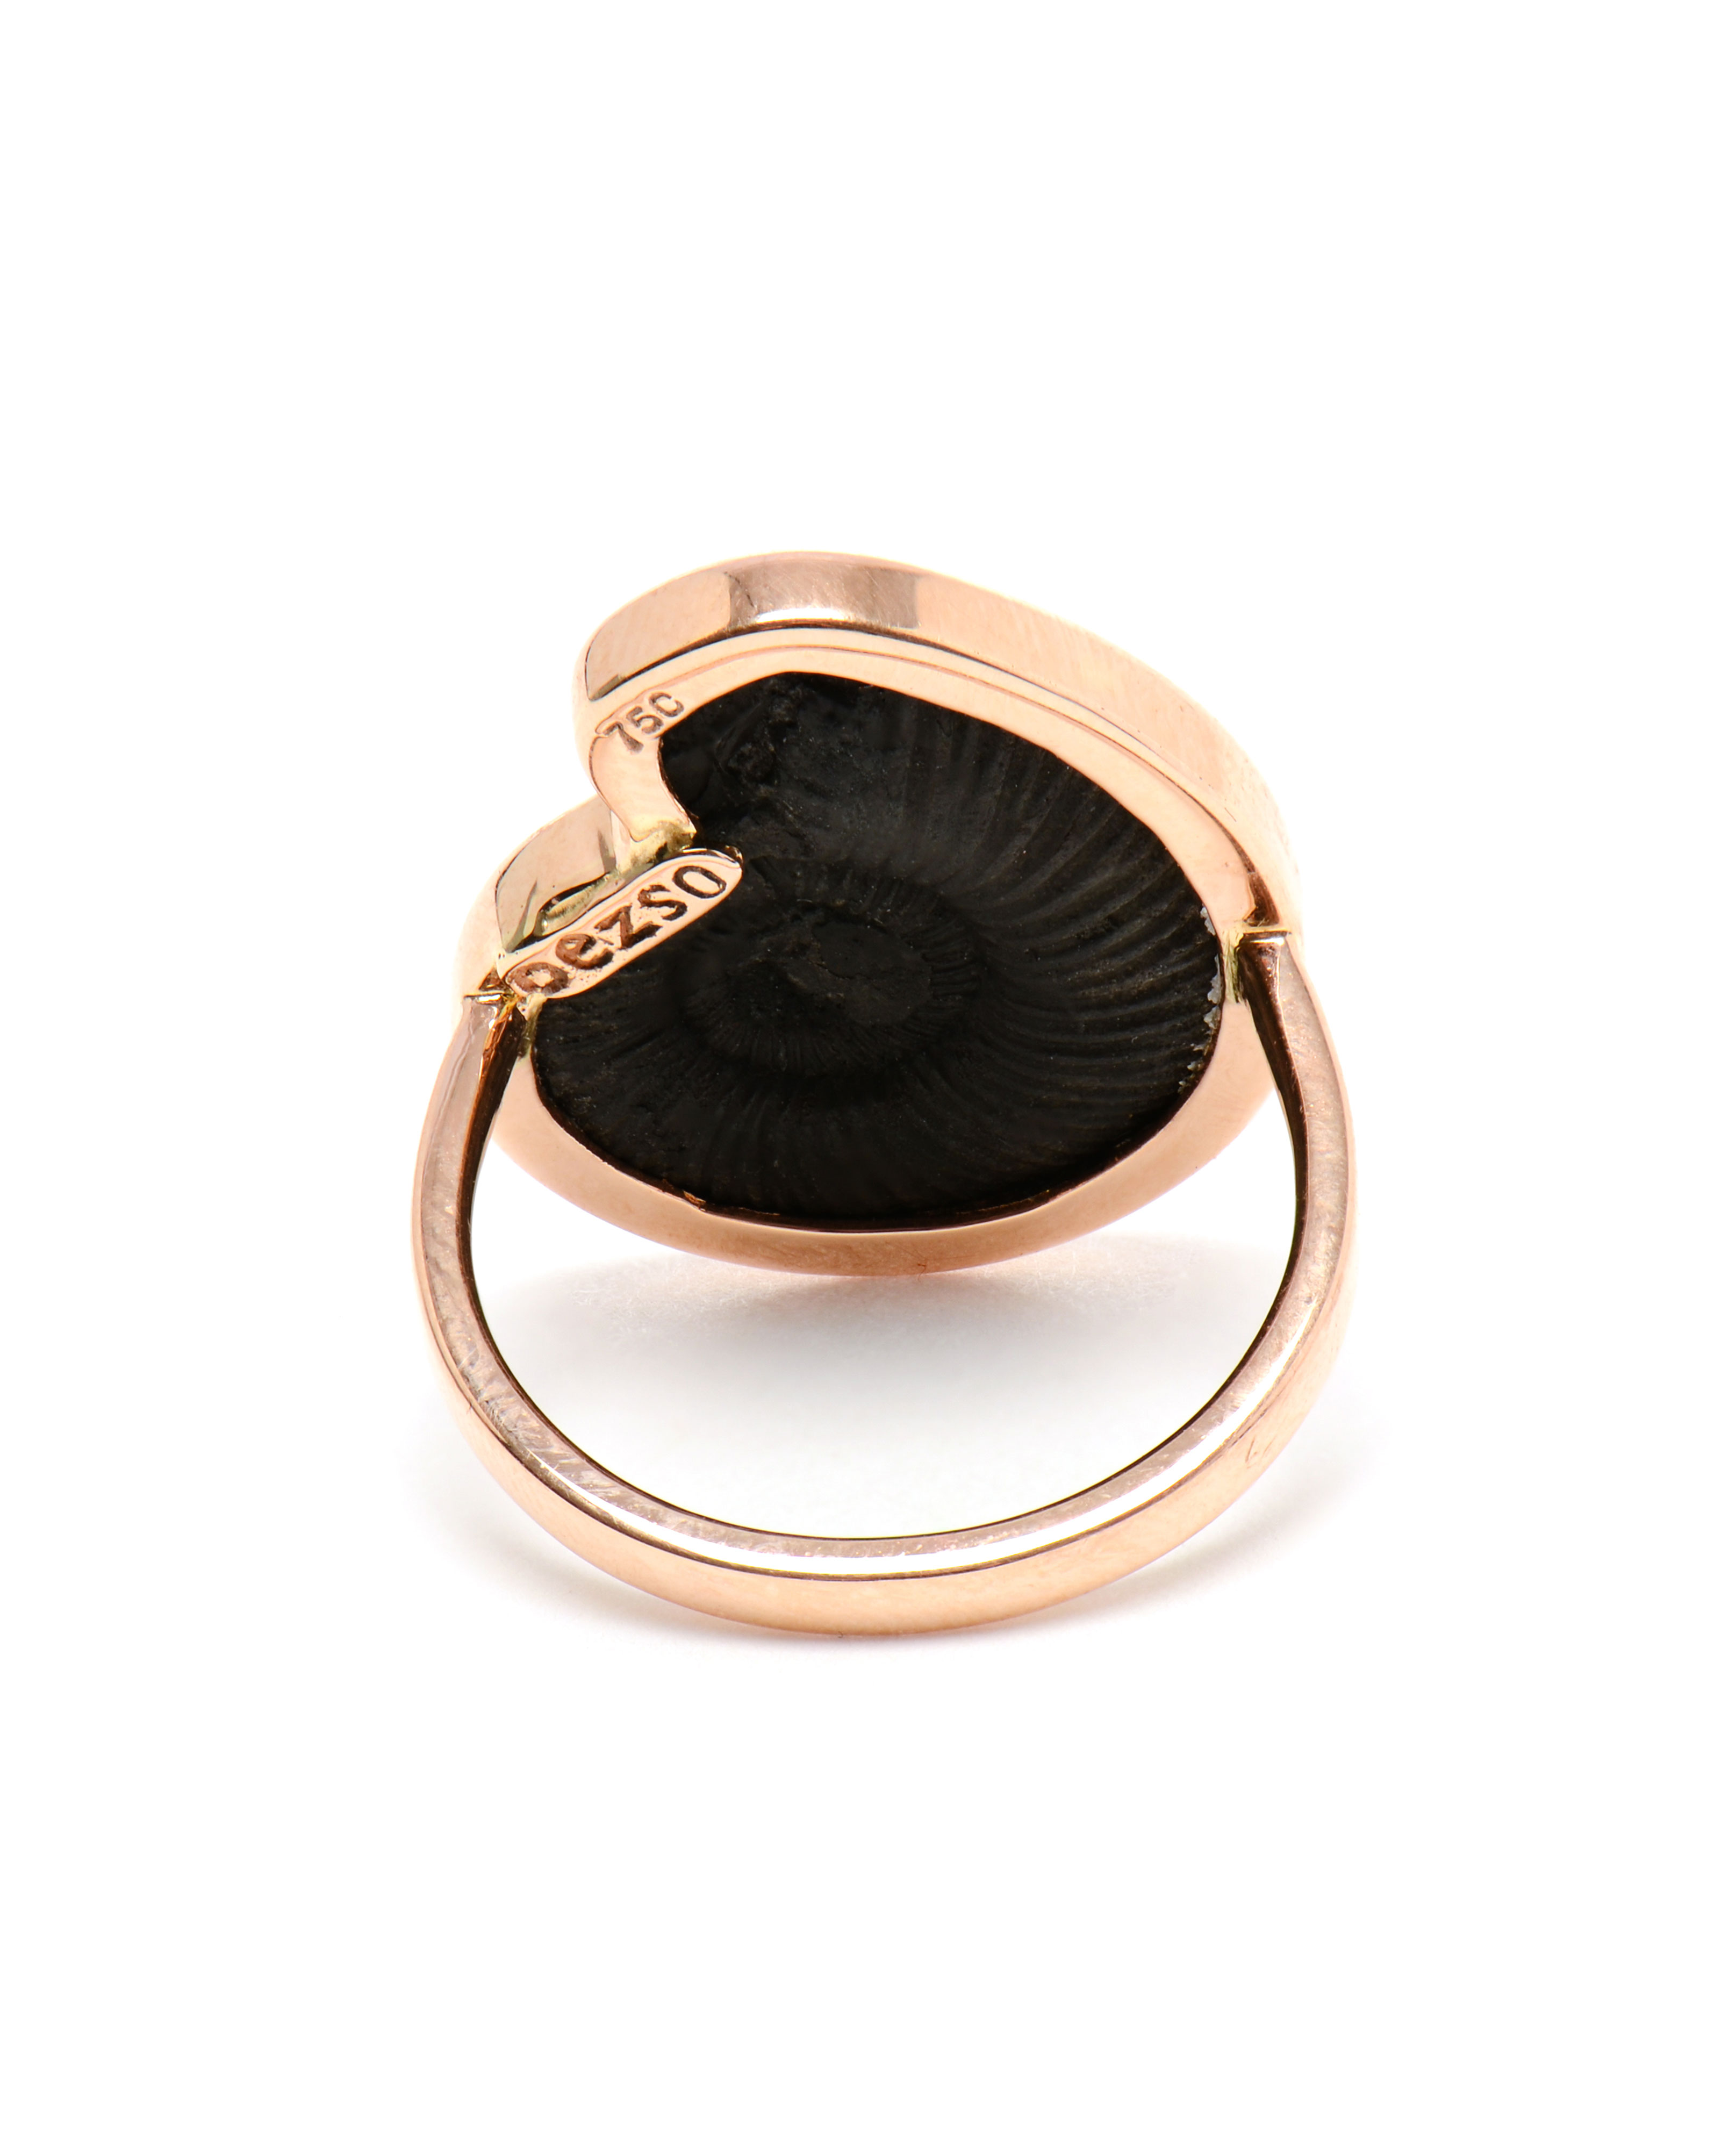 lyst dezso by sara beltran rose gold and black fossil ring in black. Black Bedroom Furniture Sets. Home Design Ideas